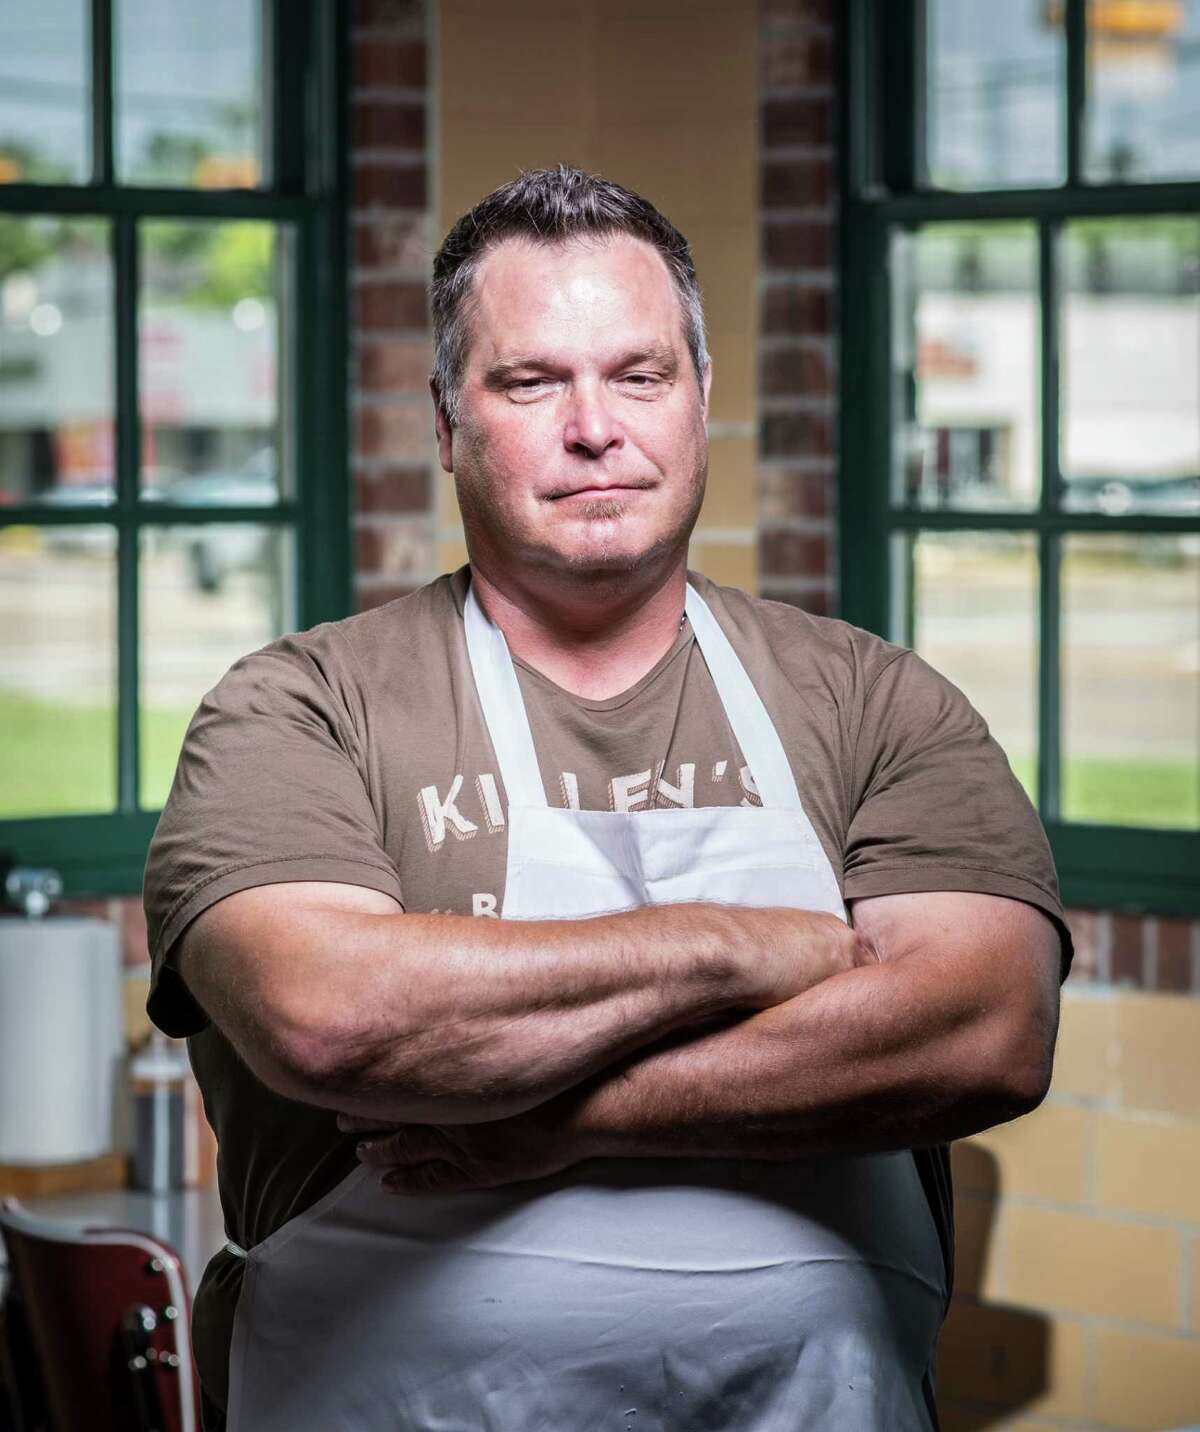 PHOTOS: The best of the chef Chef Ronnie Killen of Killen's Barbecue and Killen's Steakhouse in Pearland. Killen plans to open a new restaurant in the former home of Bramble. >>See what Ronnie Killen cooks up at his other restaurants...